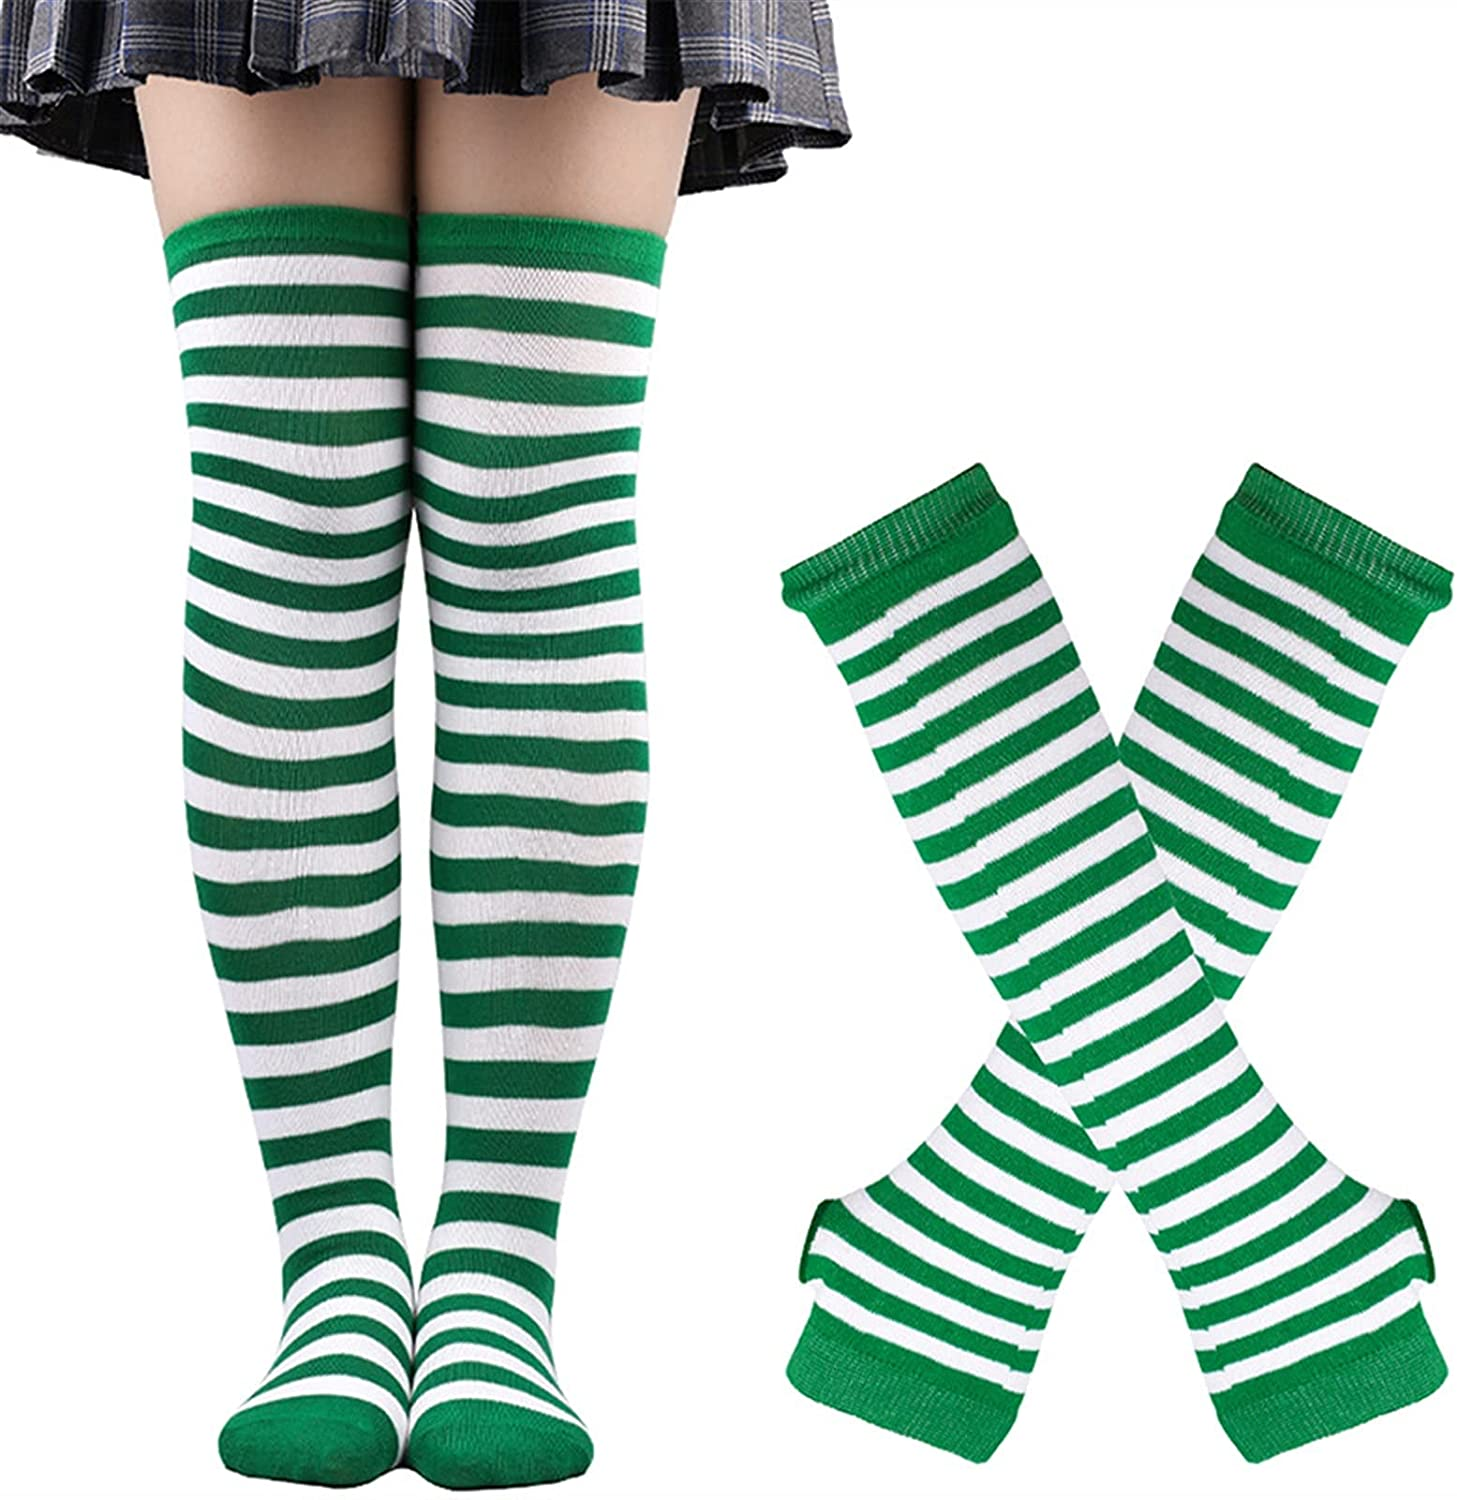 LUBINGT Winter Gloves Fashion Striped Arm Sleeve Thumbhole Sleeves Knee High Socks Set for Christmas Fingerless Stretchy Gloves Stockings (Color : Green White Strip, Gloves Size : One Size)